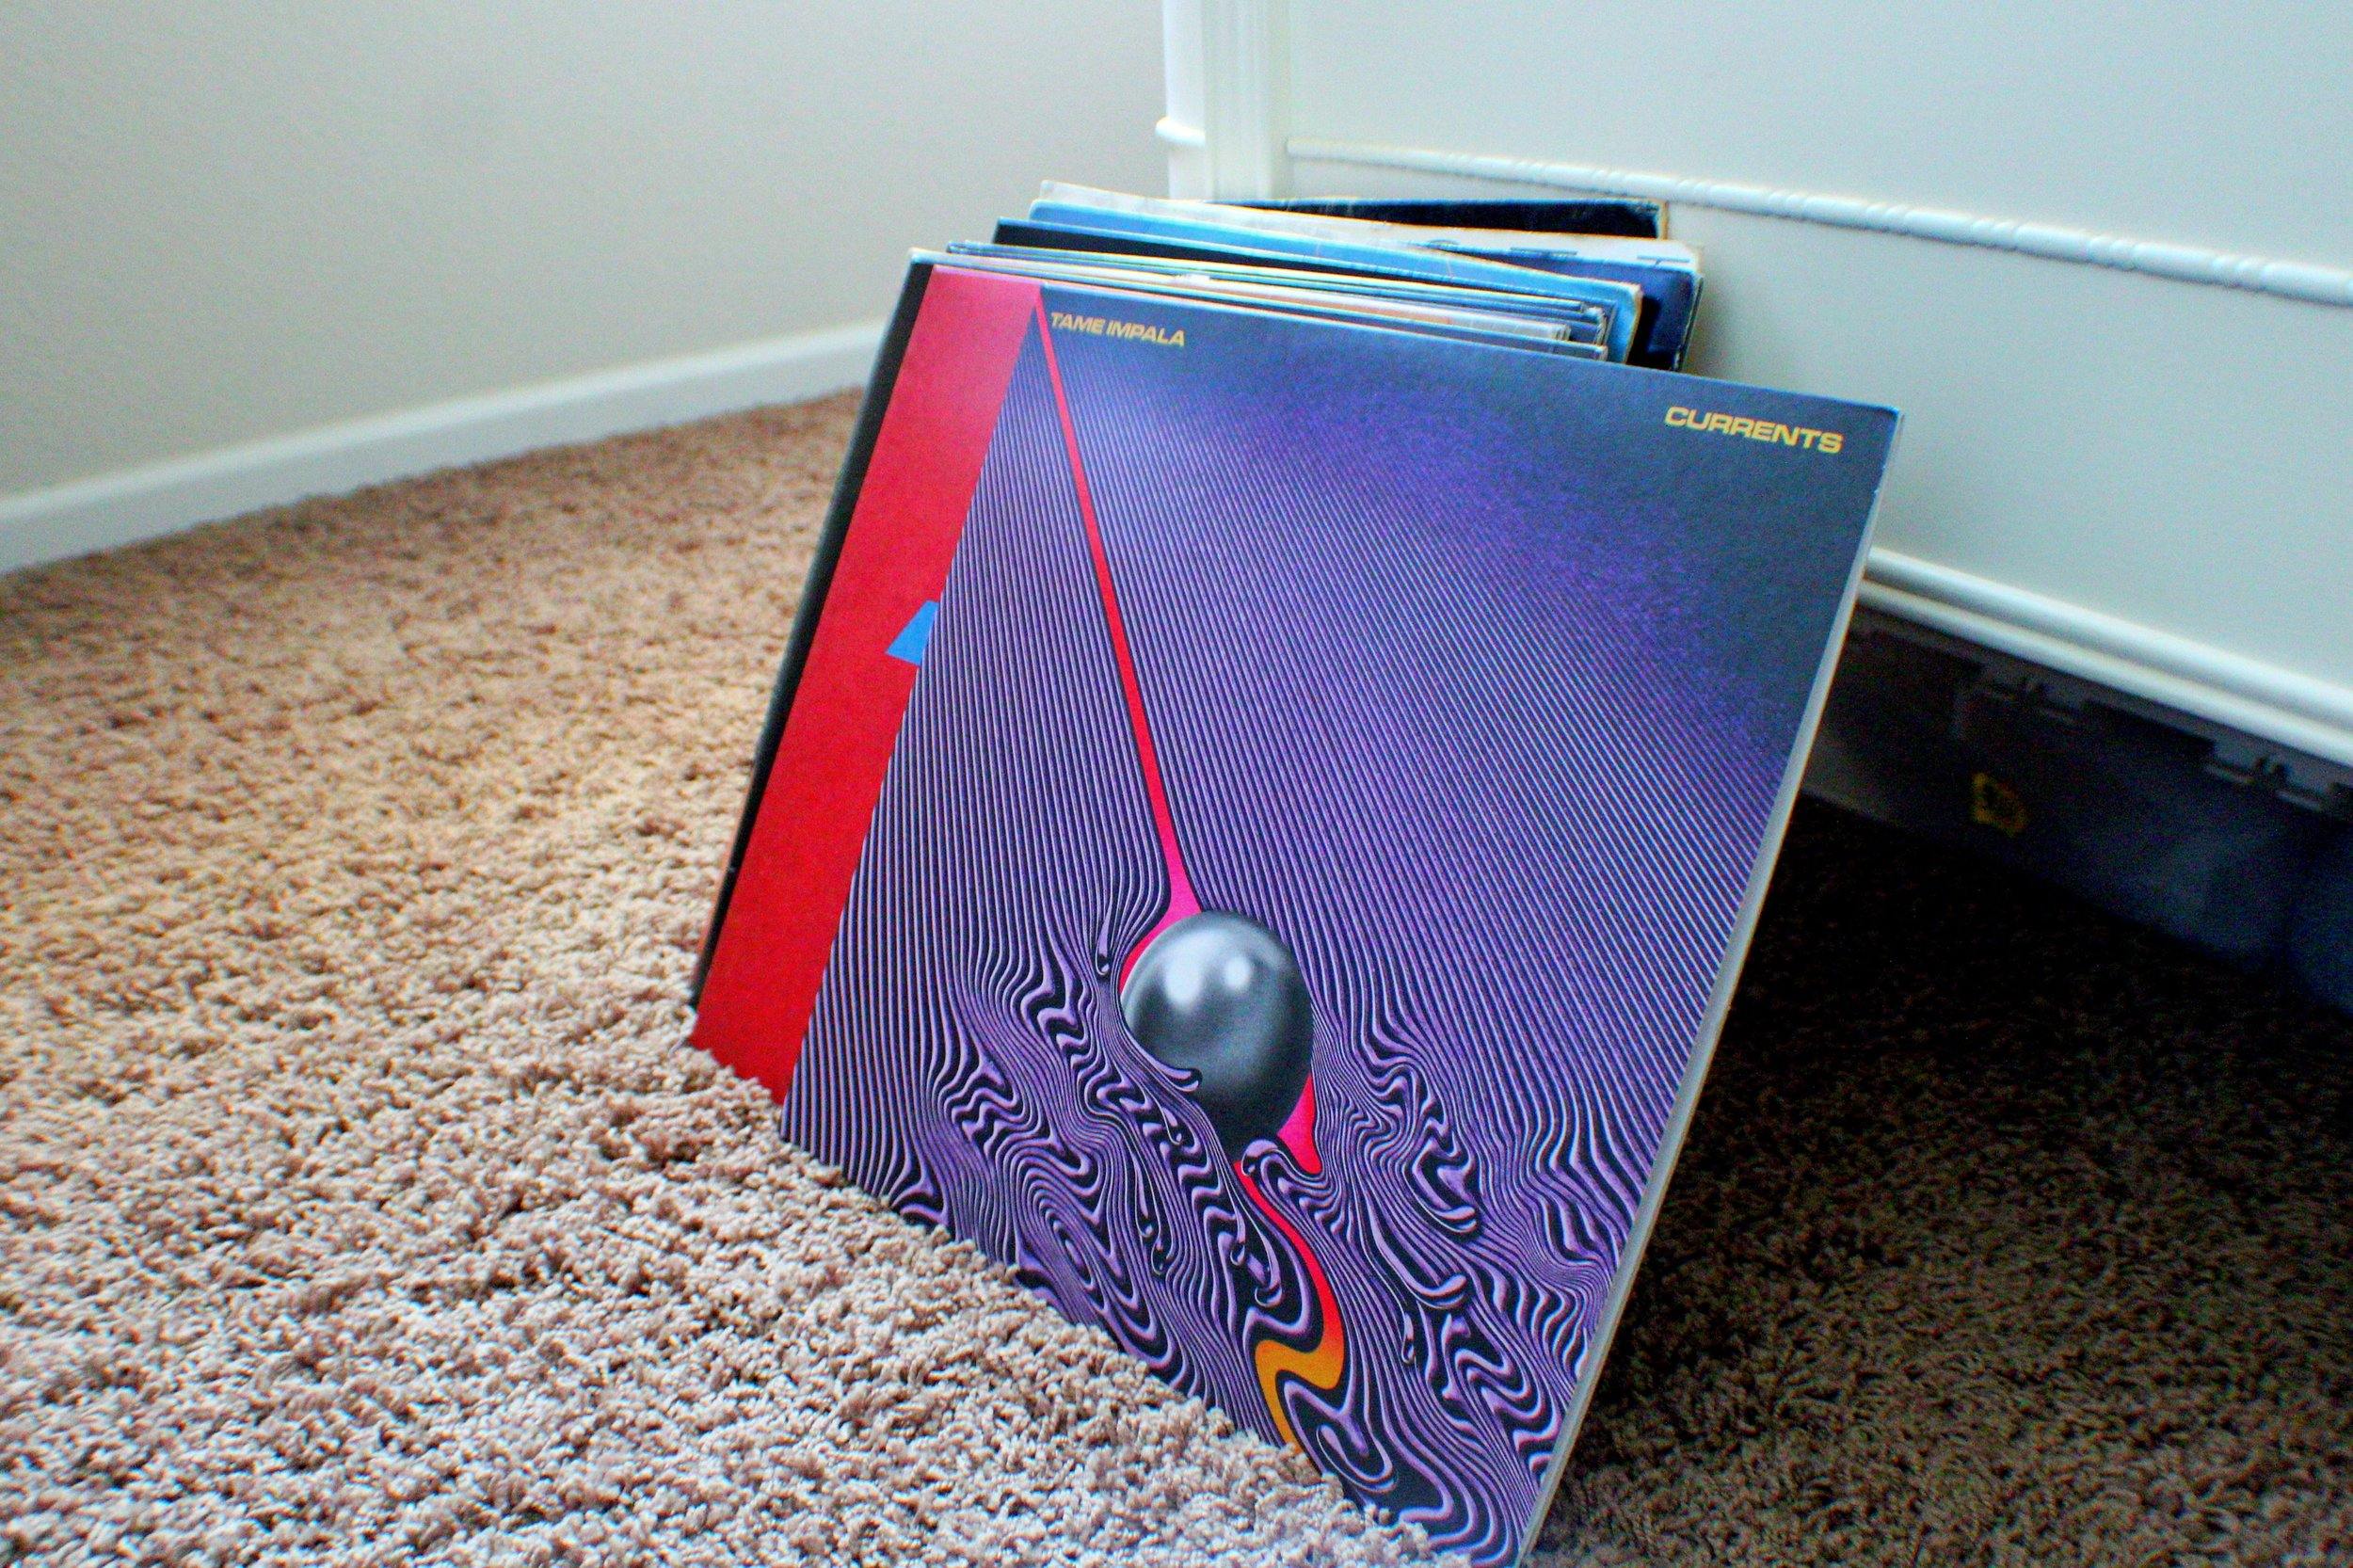 Record: Currents by Tame Impala, 2015